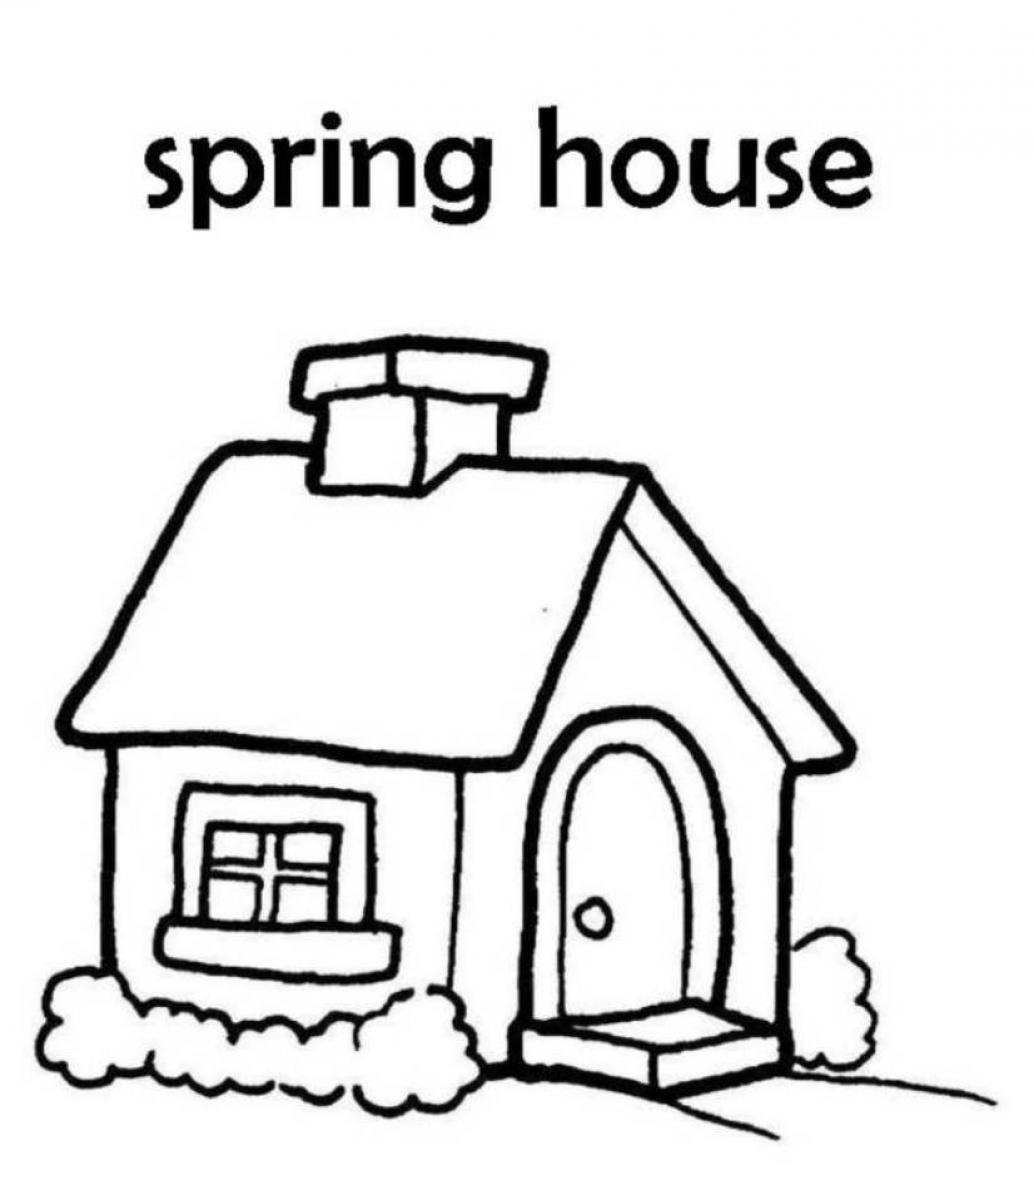 pictures of houses to color free printable house coloring pages for kids pictures houses to color of